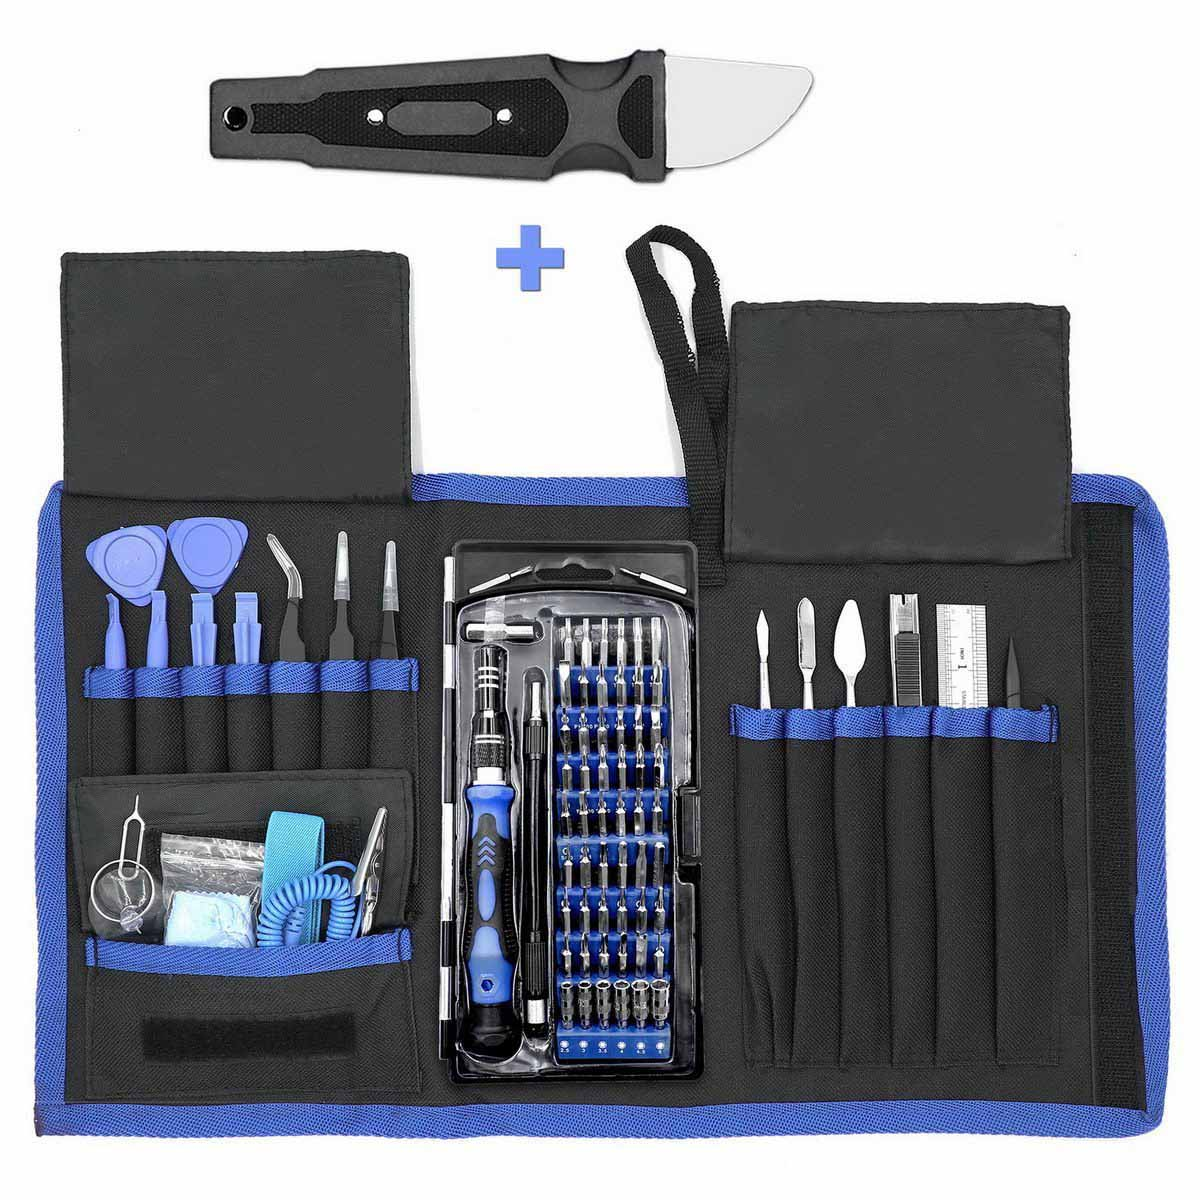 Multi-function screwdriver set 80-in-one manual combination kit mobile phone computer teardown repair daily household